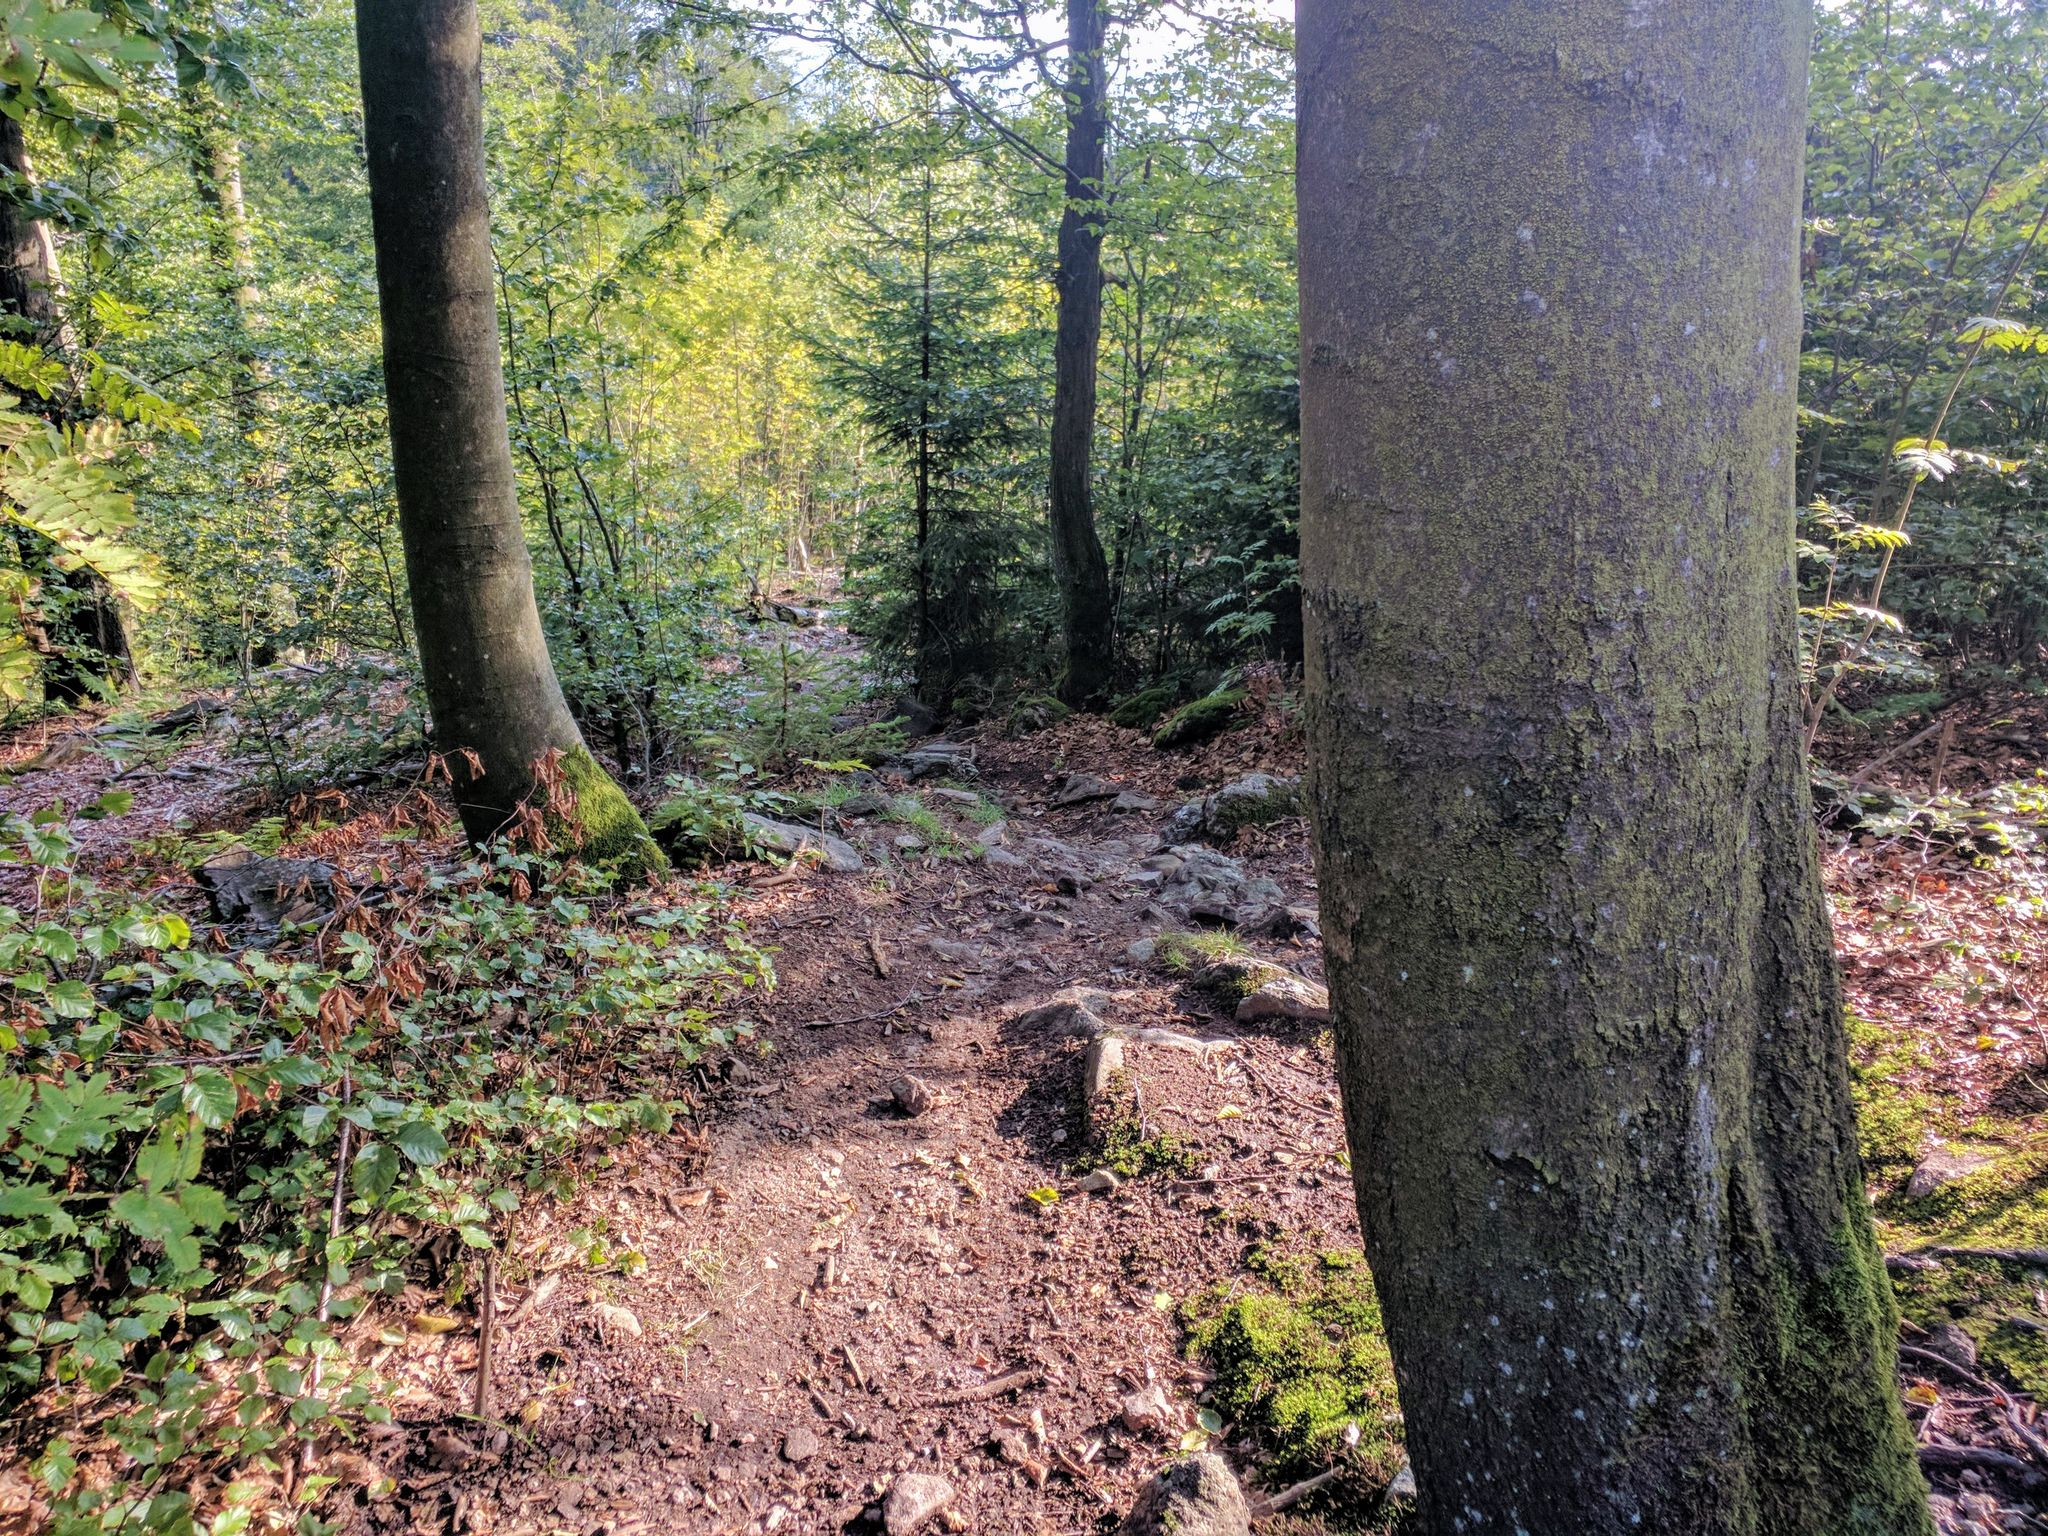 Trail am Reiseck